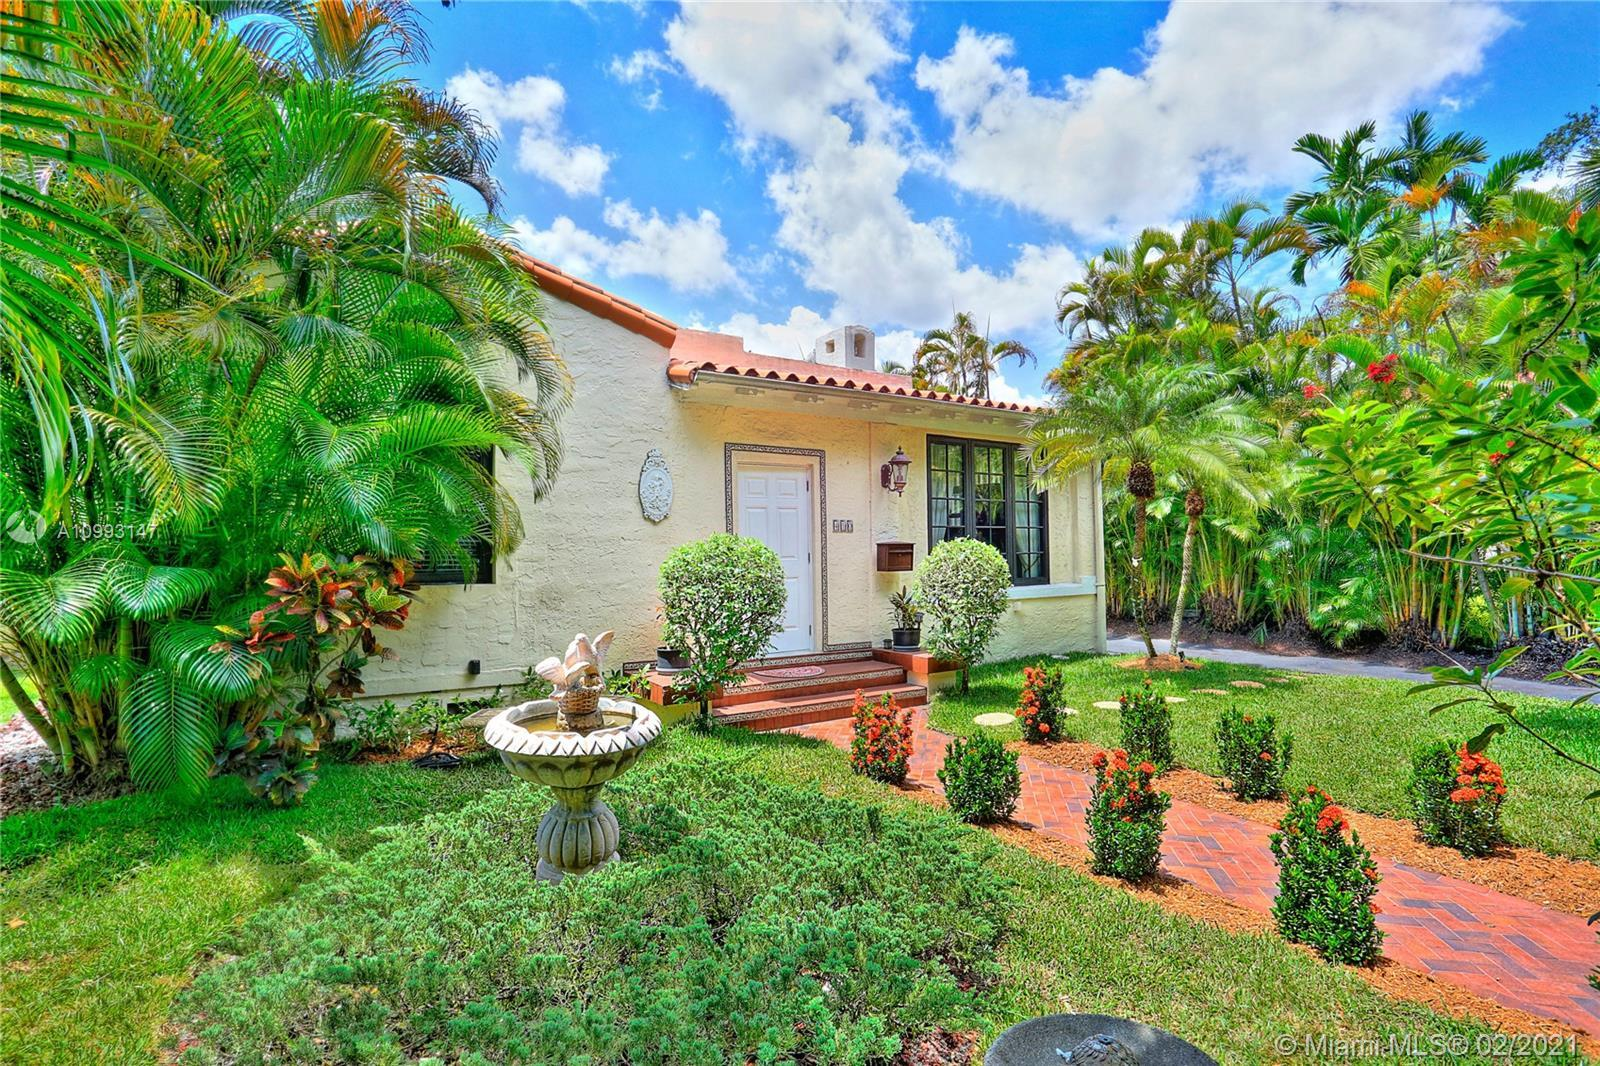 Absolutely lovely Frank Wyatt Woods home centrally located in Coral Gables, within minutes from Mira